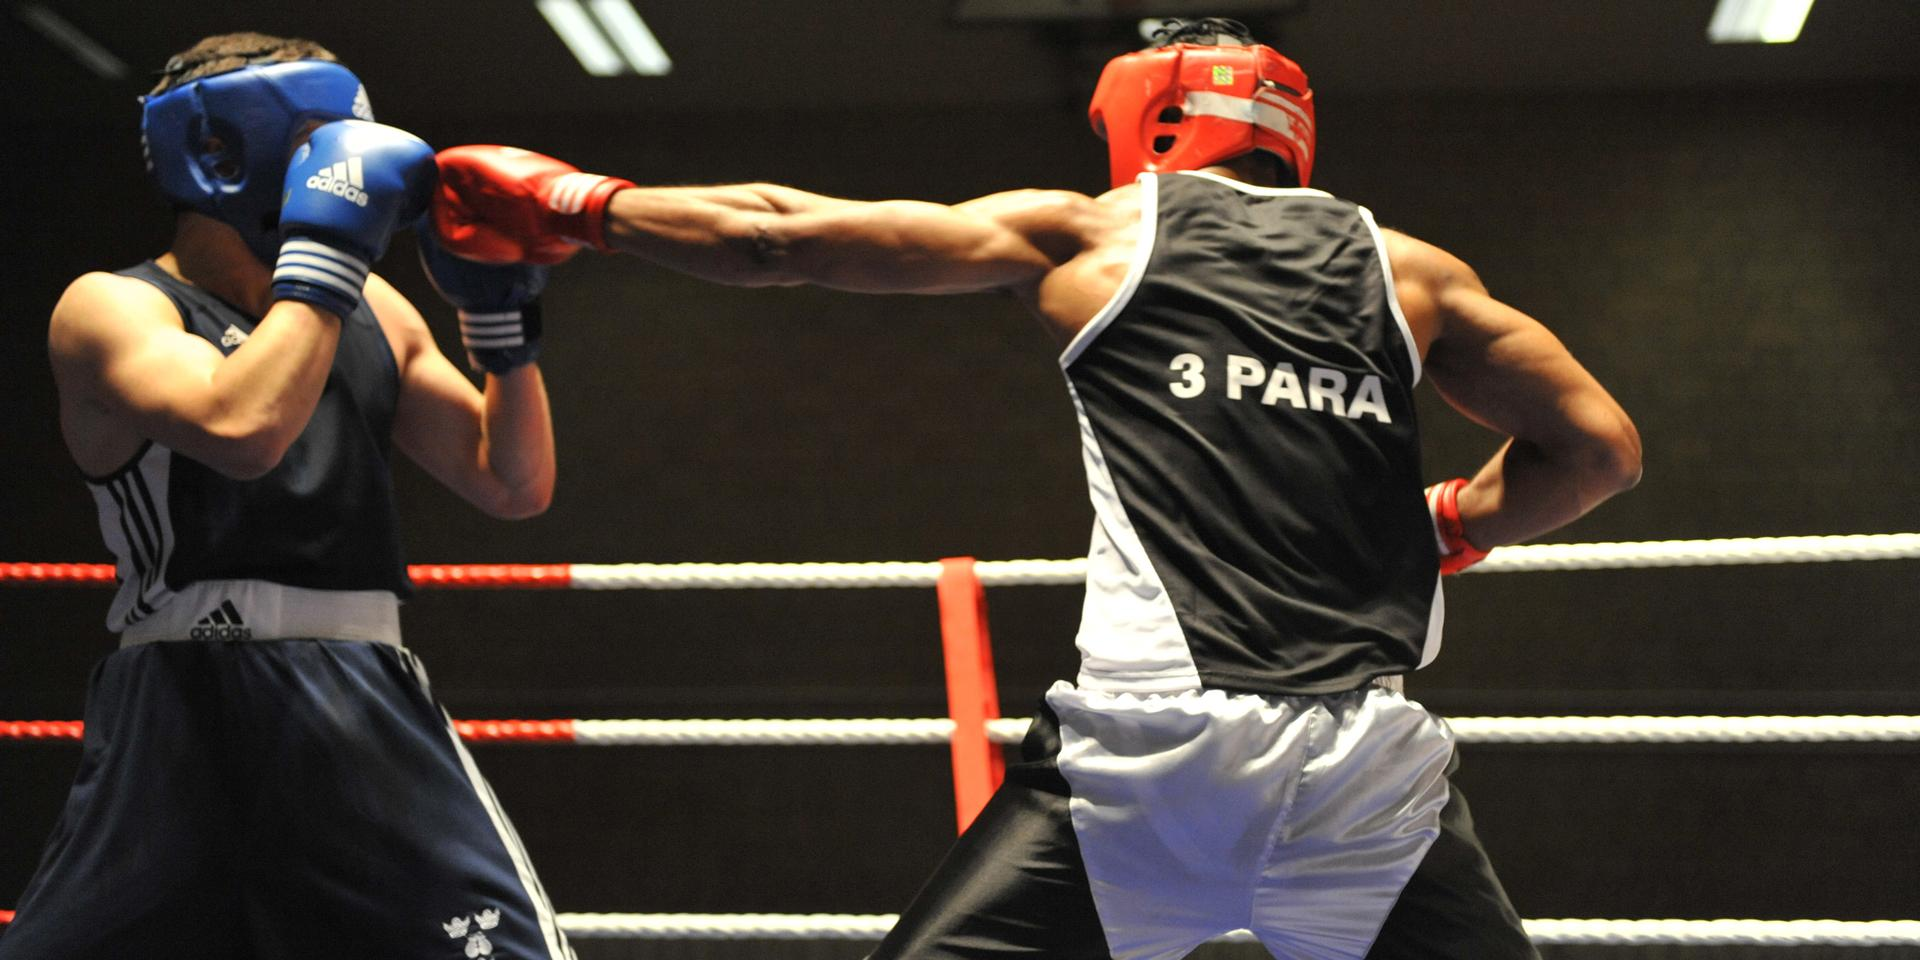 A soldier from 3rd Battalion The Parachute Regiment fights a boxer from Oxford University, 2009